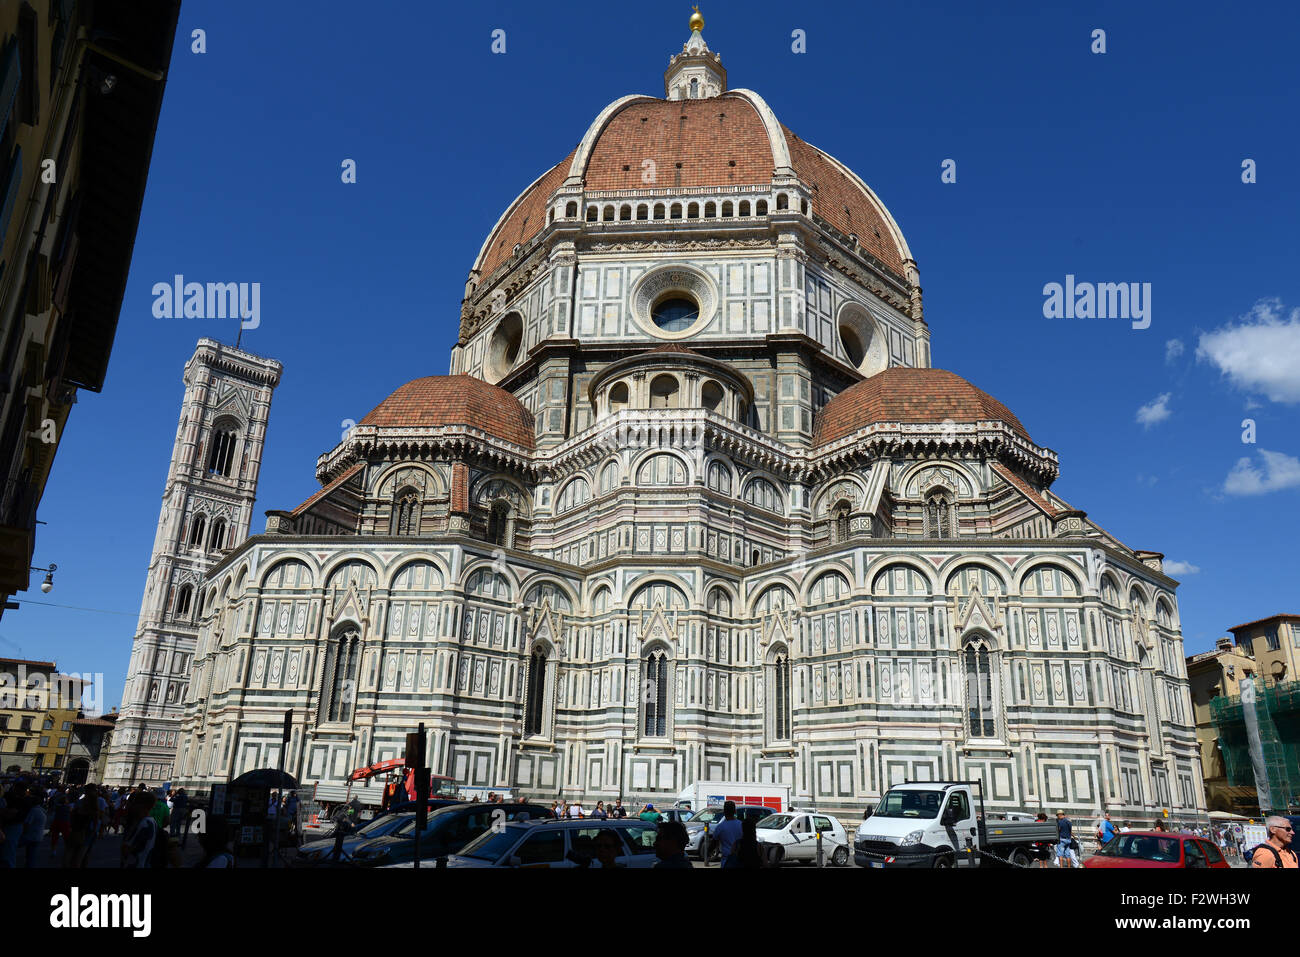 Florence Cathedral (The Duomo) situated in Piazza del Duomo, Florence, Tuscany, Italy. - Stock Image